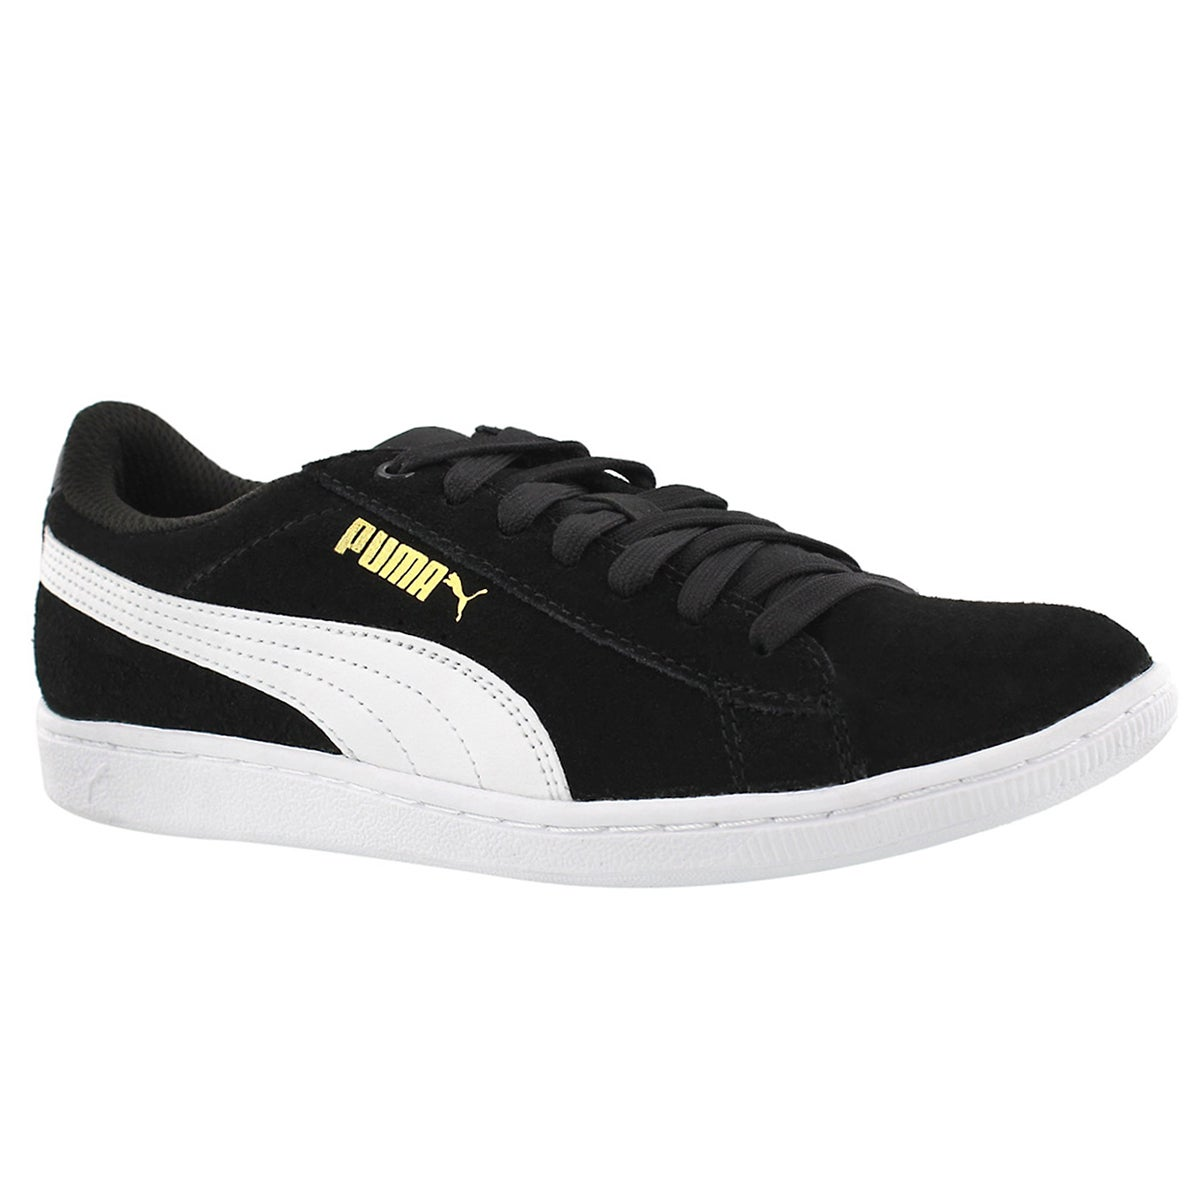 Women's PUMA VIKKY black/white sneakers